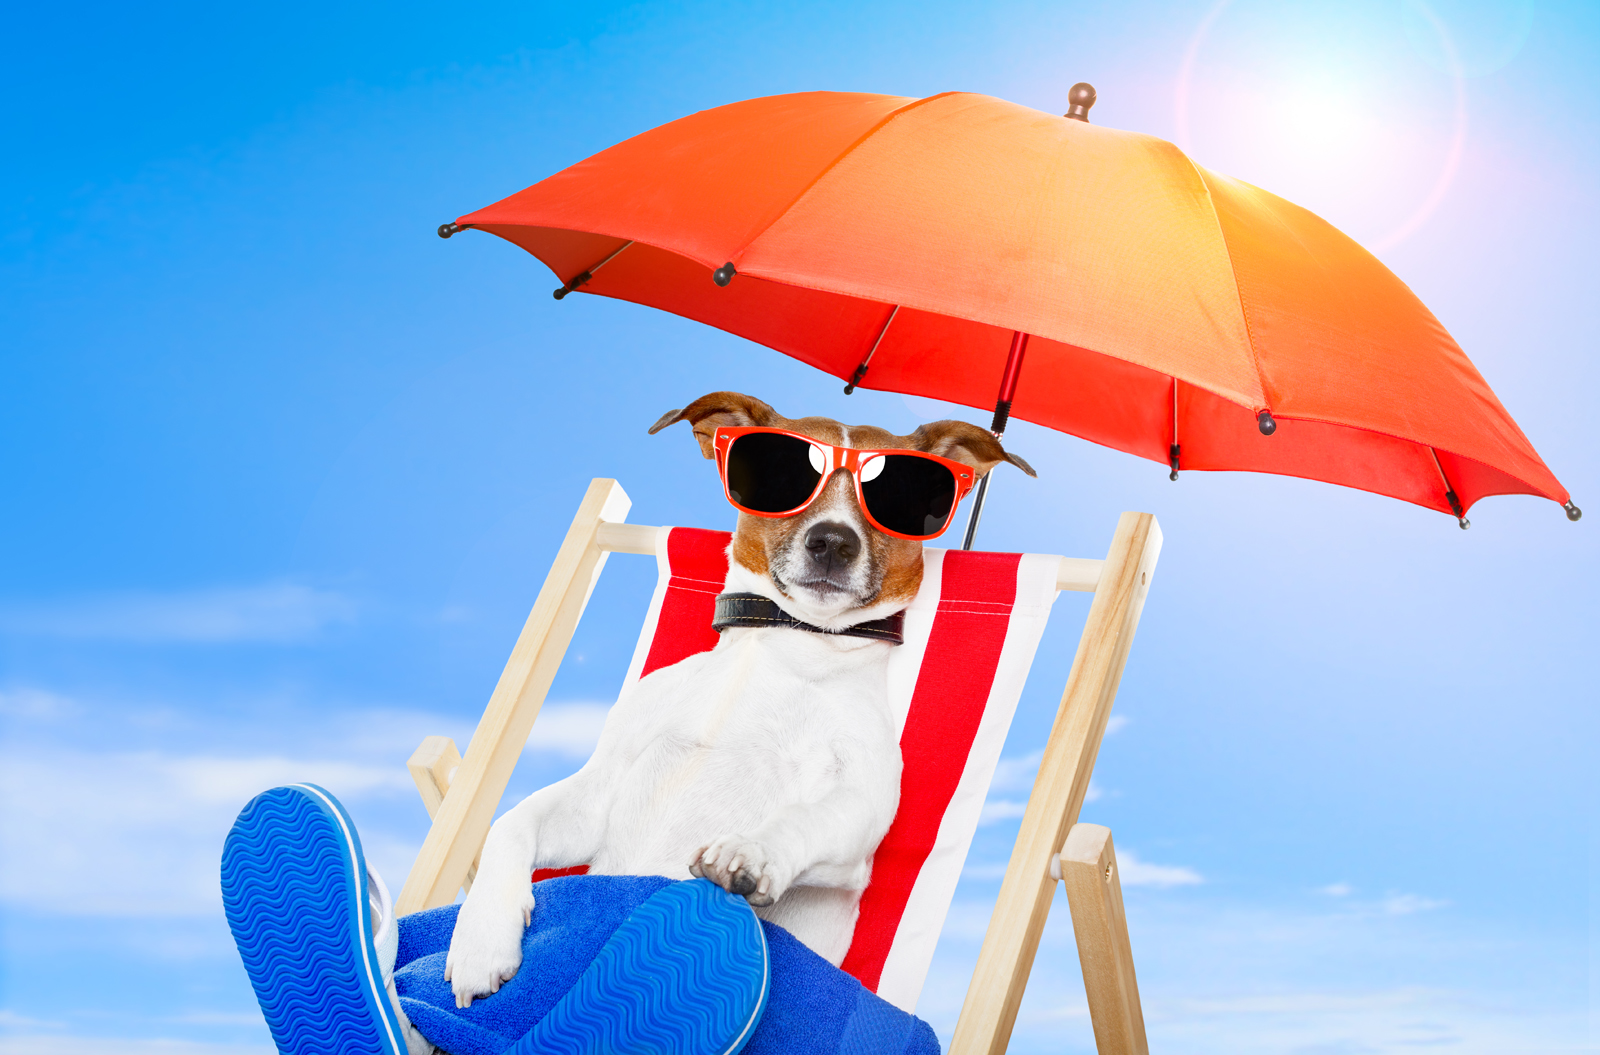 summer infant beach chair best gaming chairs 2018 reddit dog sunbathing on a deck khoirulpage